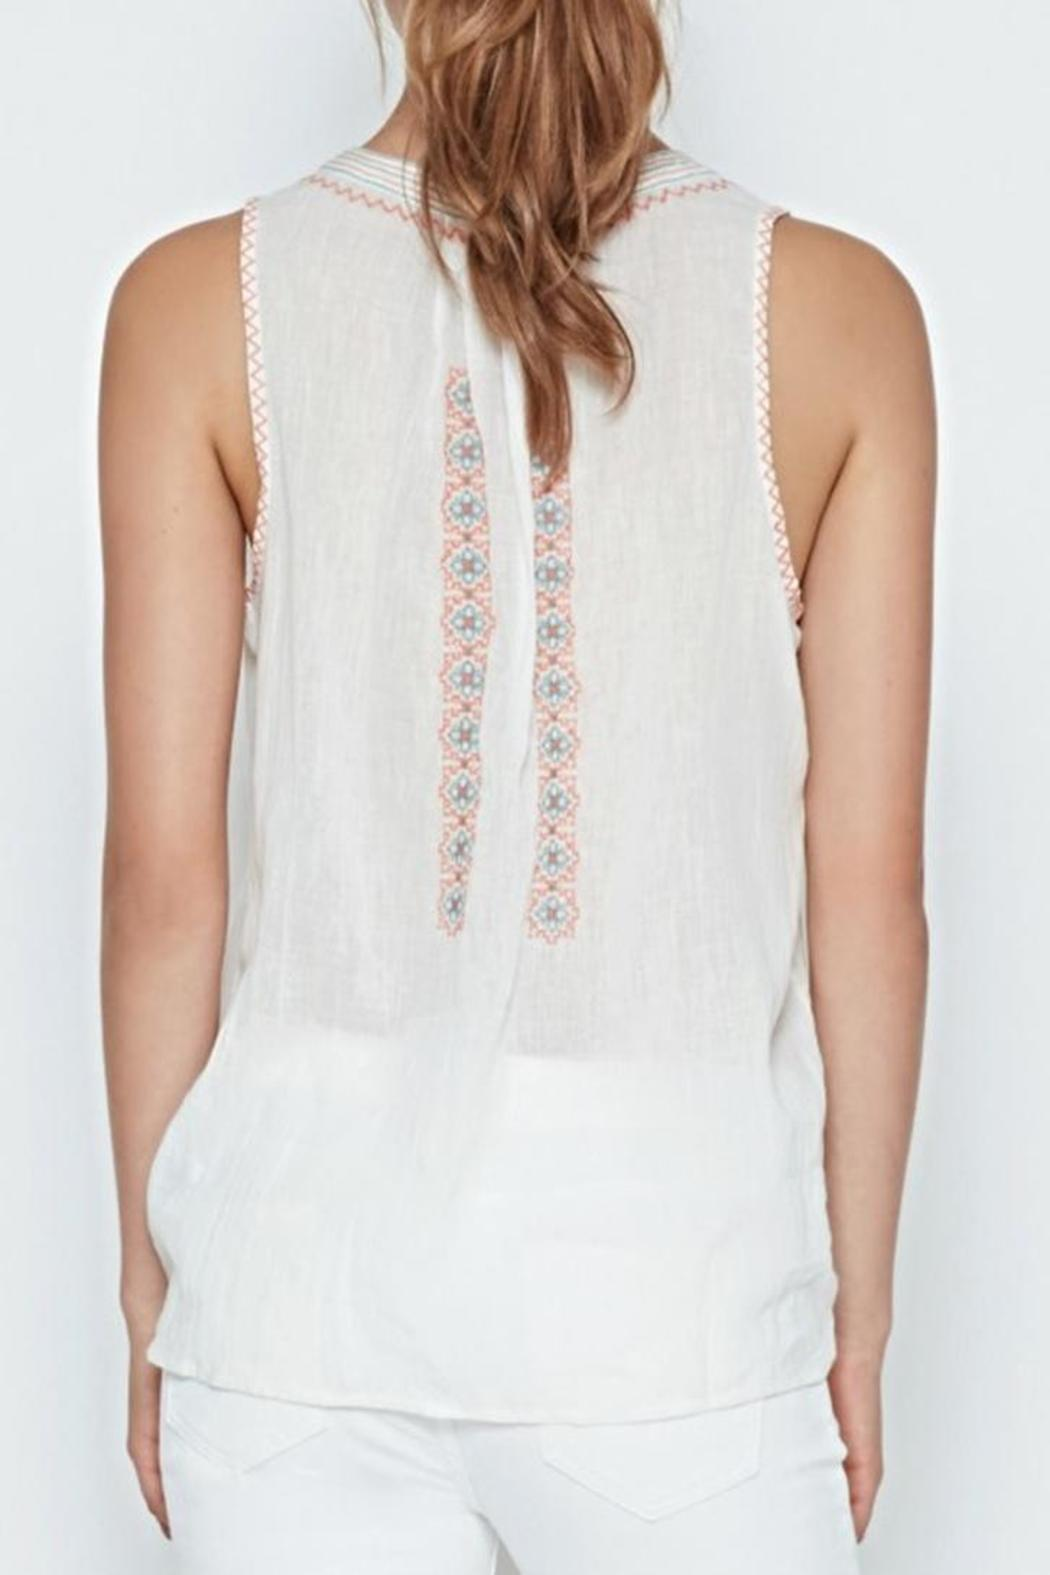 Joie Marl Embroidered Top - Side Cropped Image